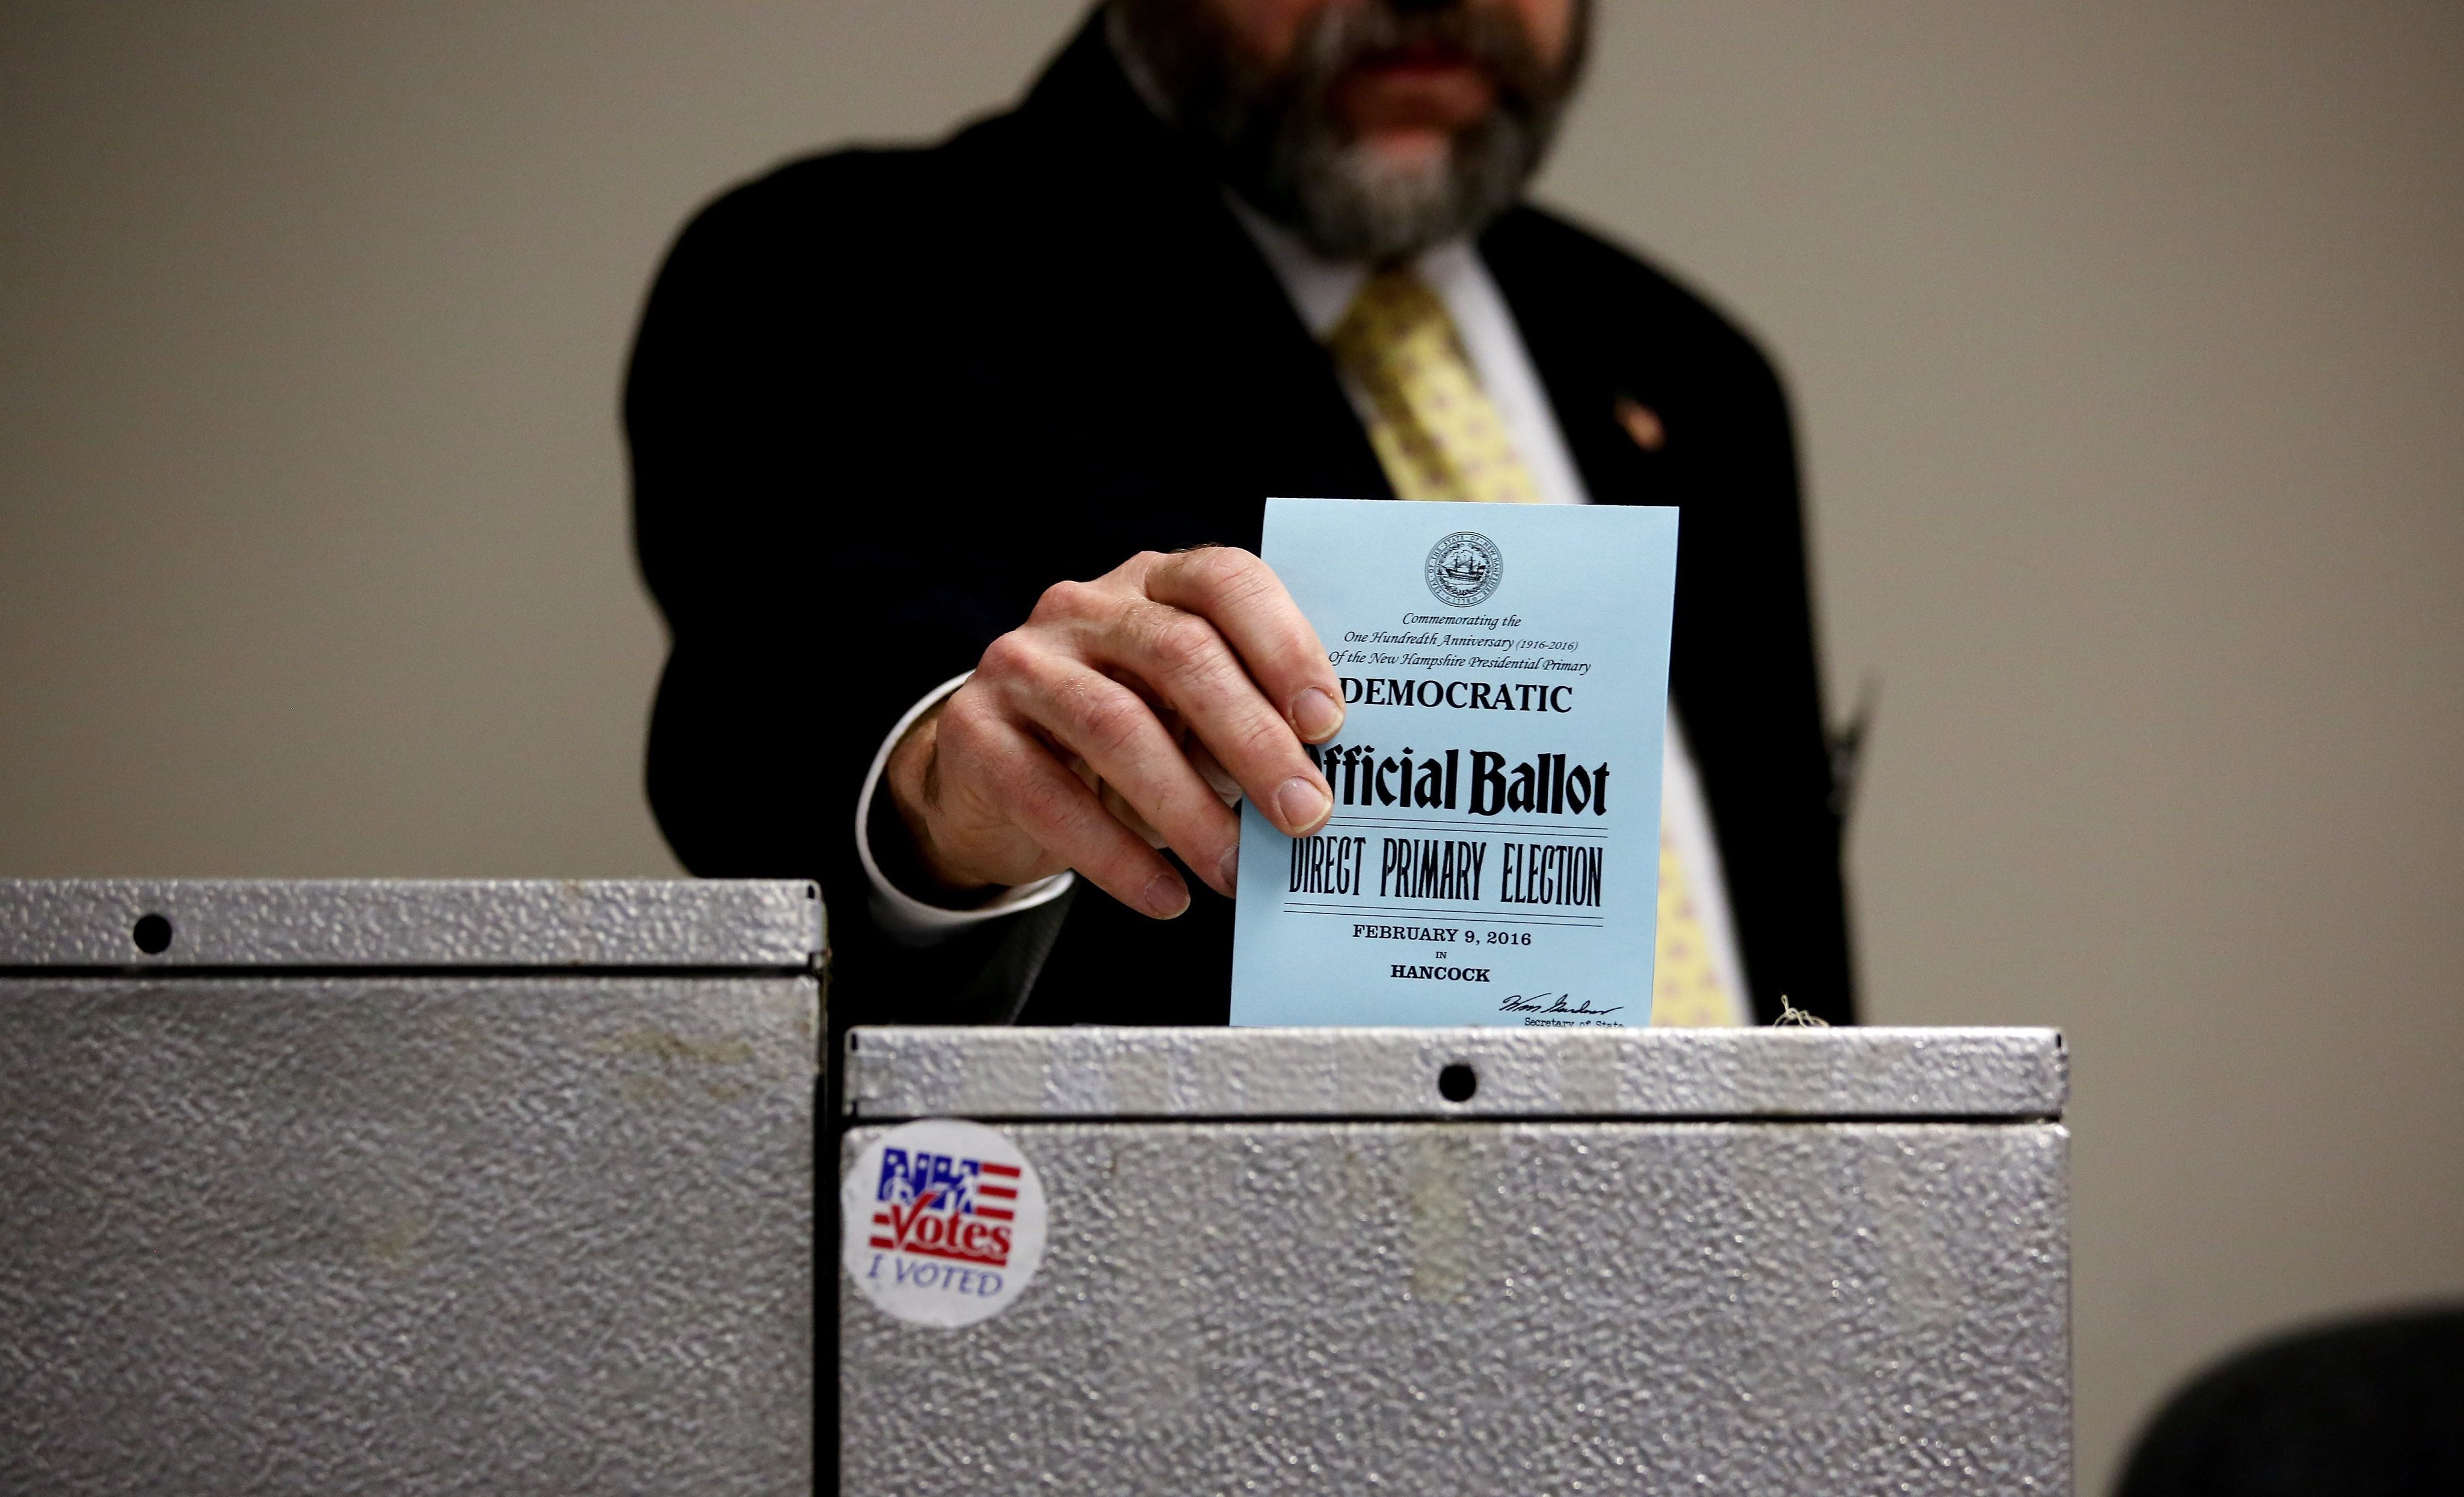 Town Moderator Richard Haskins enters his ballot in today's presidential primary in Hancock, New Hampshire.